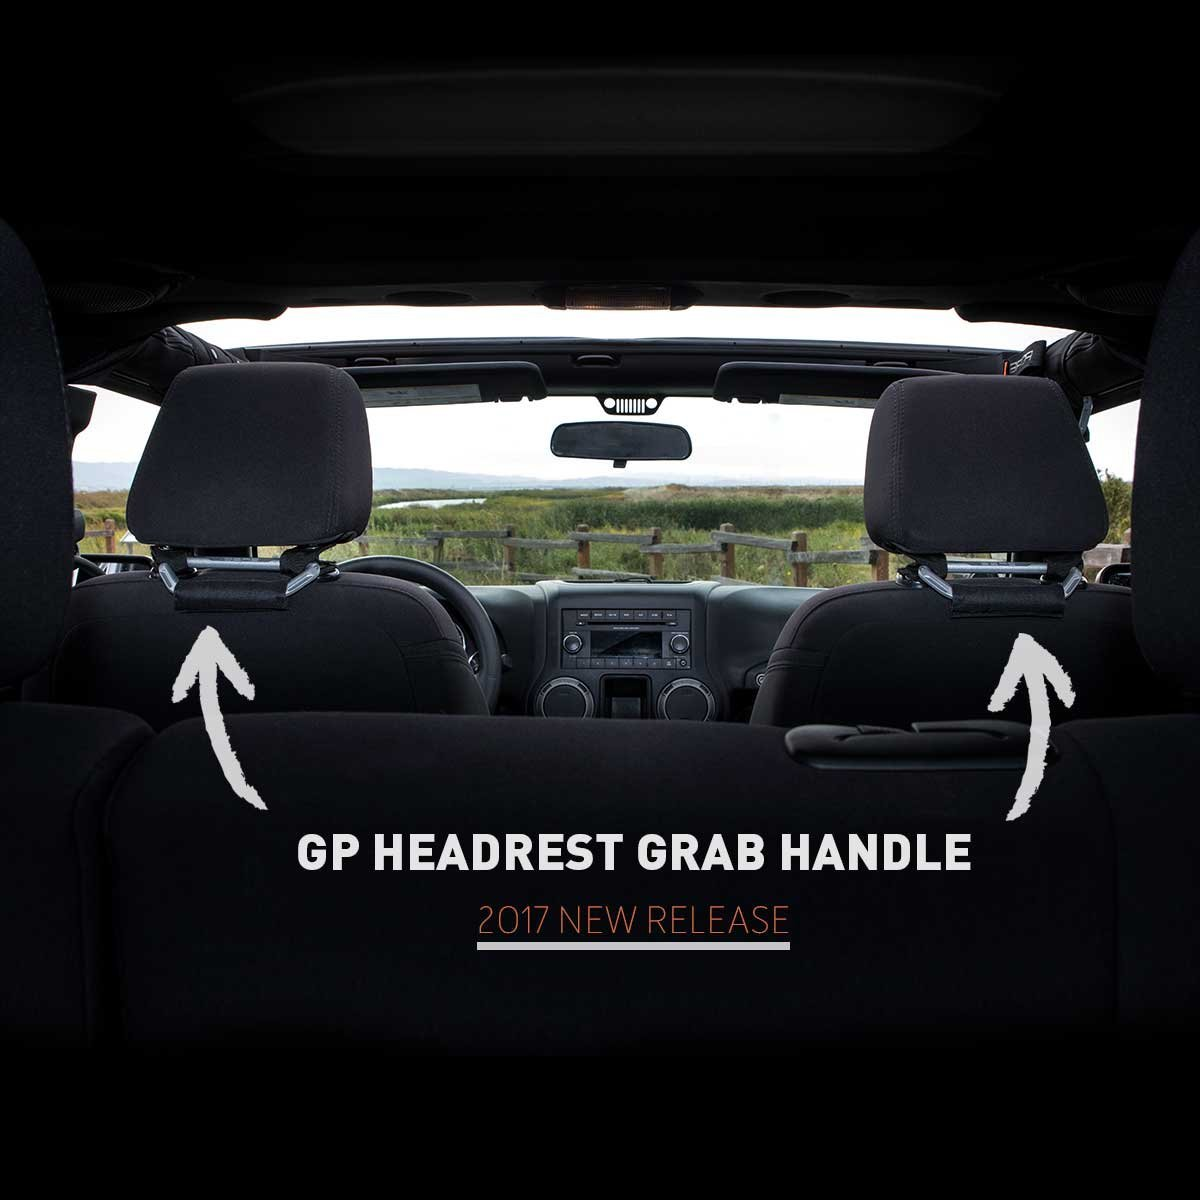 GPBG-JK-BLK GPCA Headrest Grab Handles for Jeep Wrangler JK//JKU and Cars with headrest Poles GP-Back-Grip for 4X4 Off-Road Backseat Passengers - D1//2 or 12mm Metallic